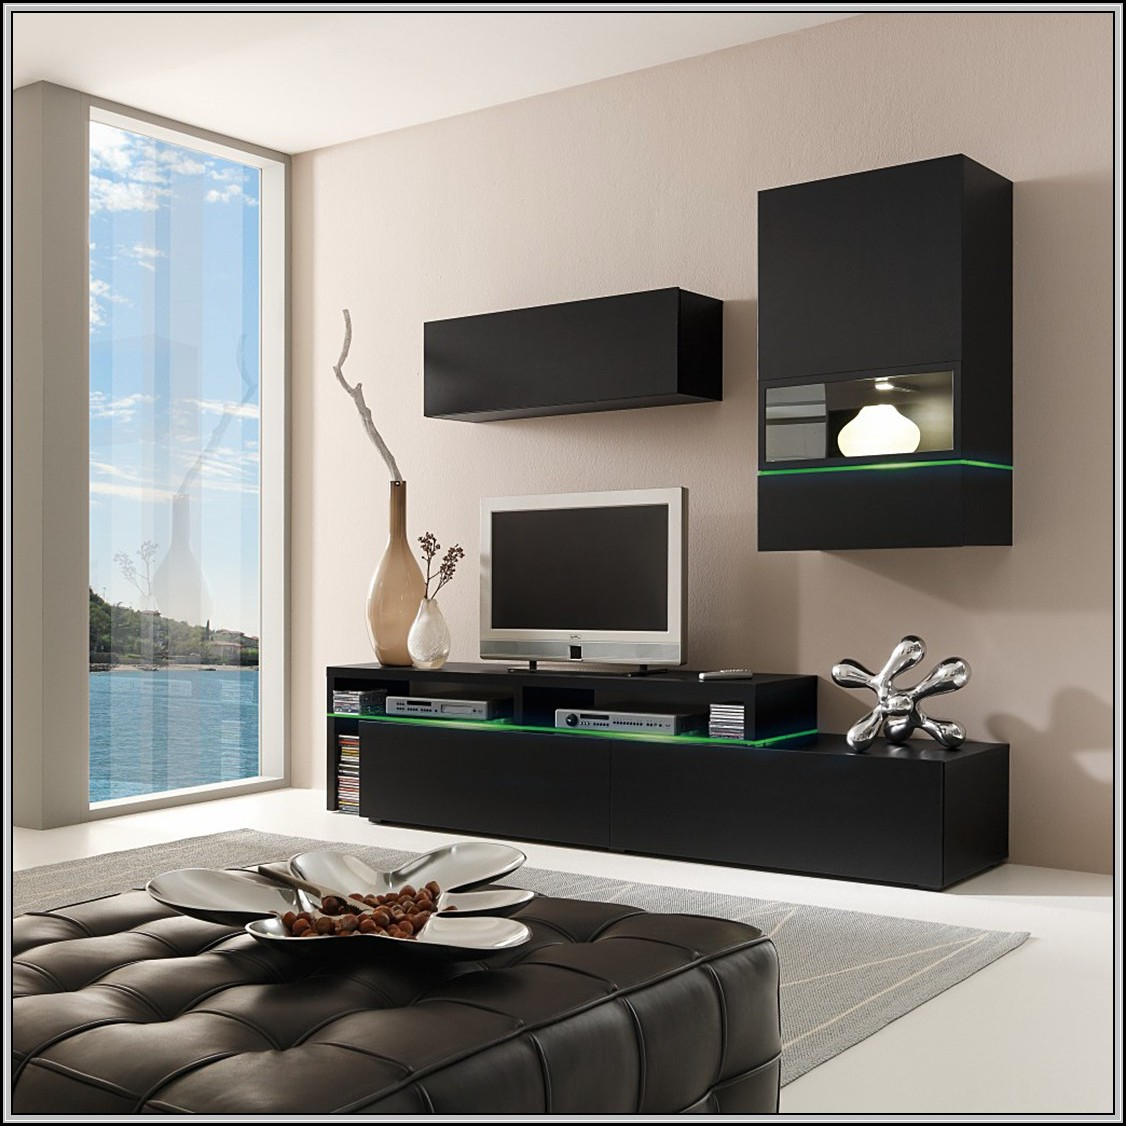 wohnwand beleuchtung mit fernbedienung beleuchthung house und dekor galerie jvr7w5nrzj. Black Bedroom Furniture Sets. Home Design Ideas